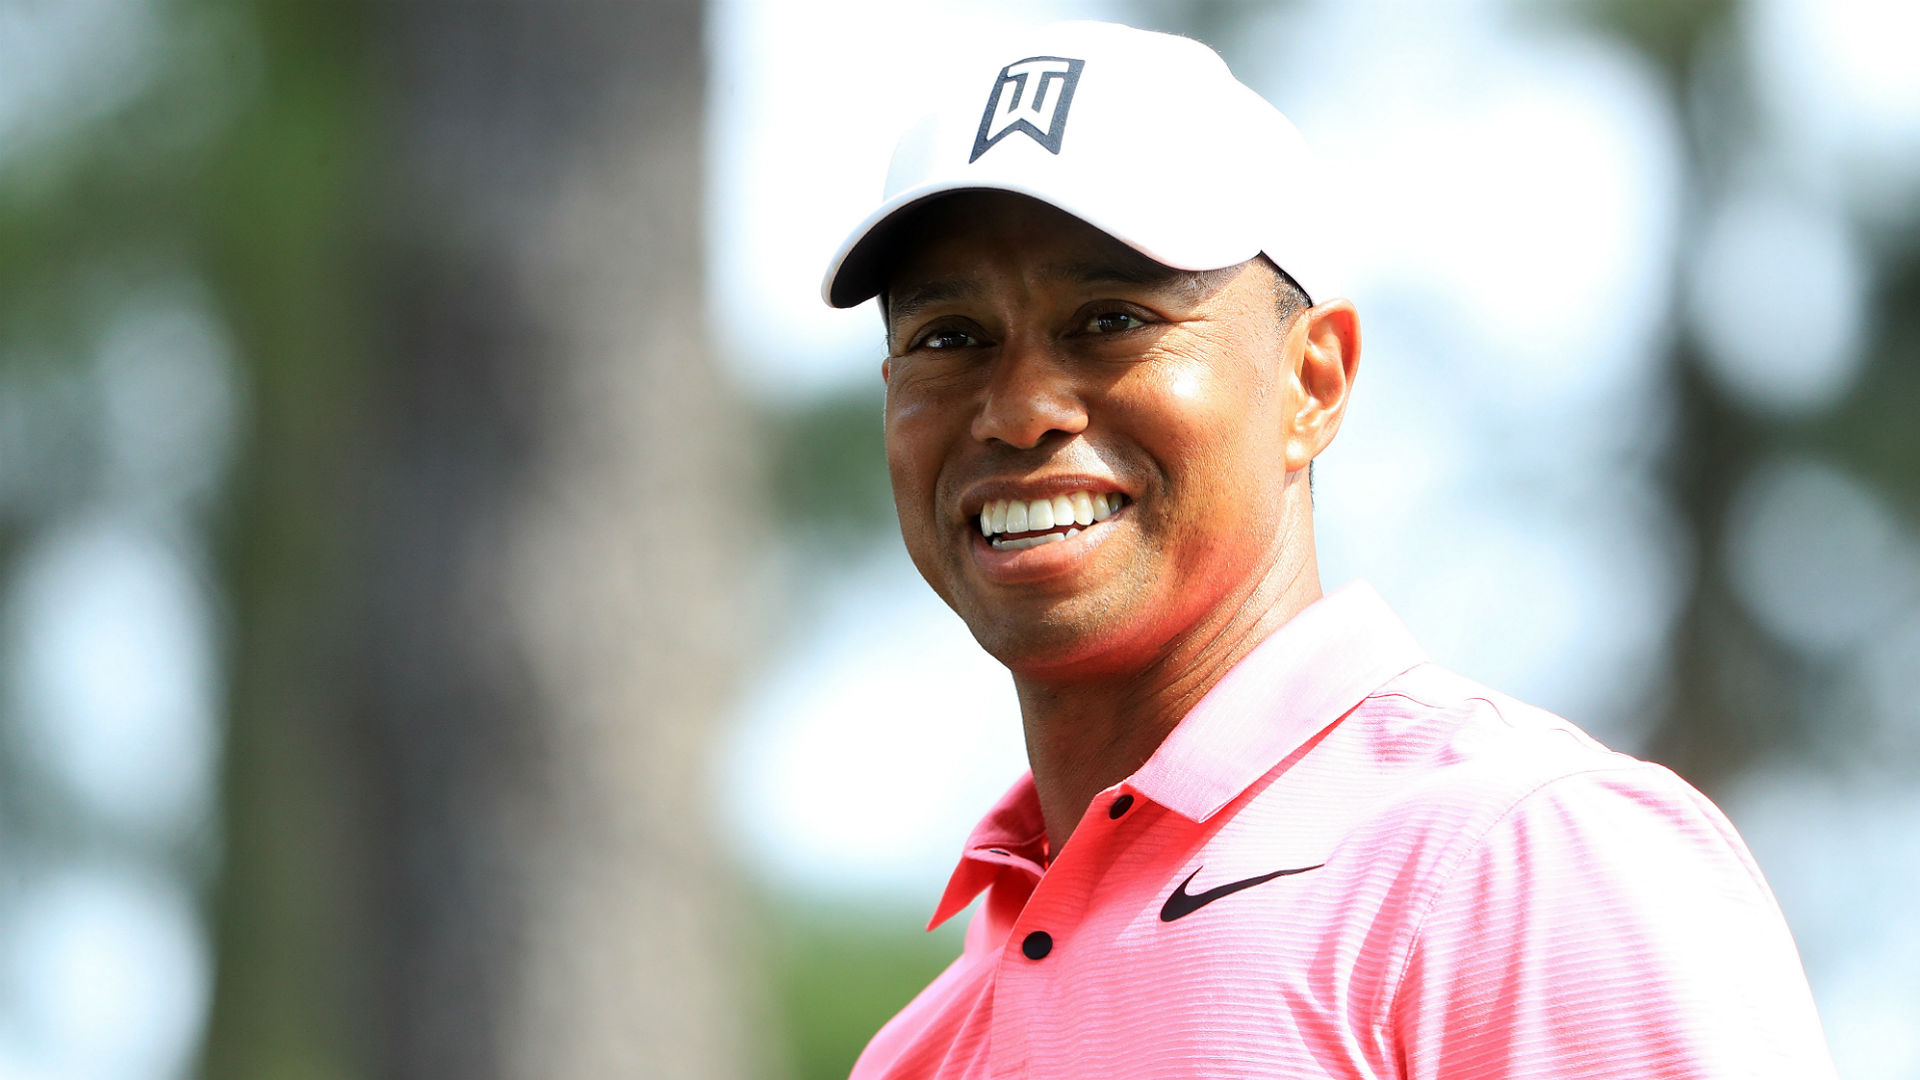 live updates from tiger woods u0026 39  round 1 at 2018 masters tournament